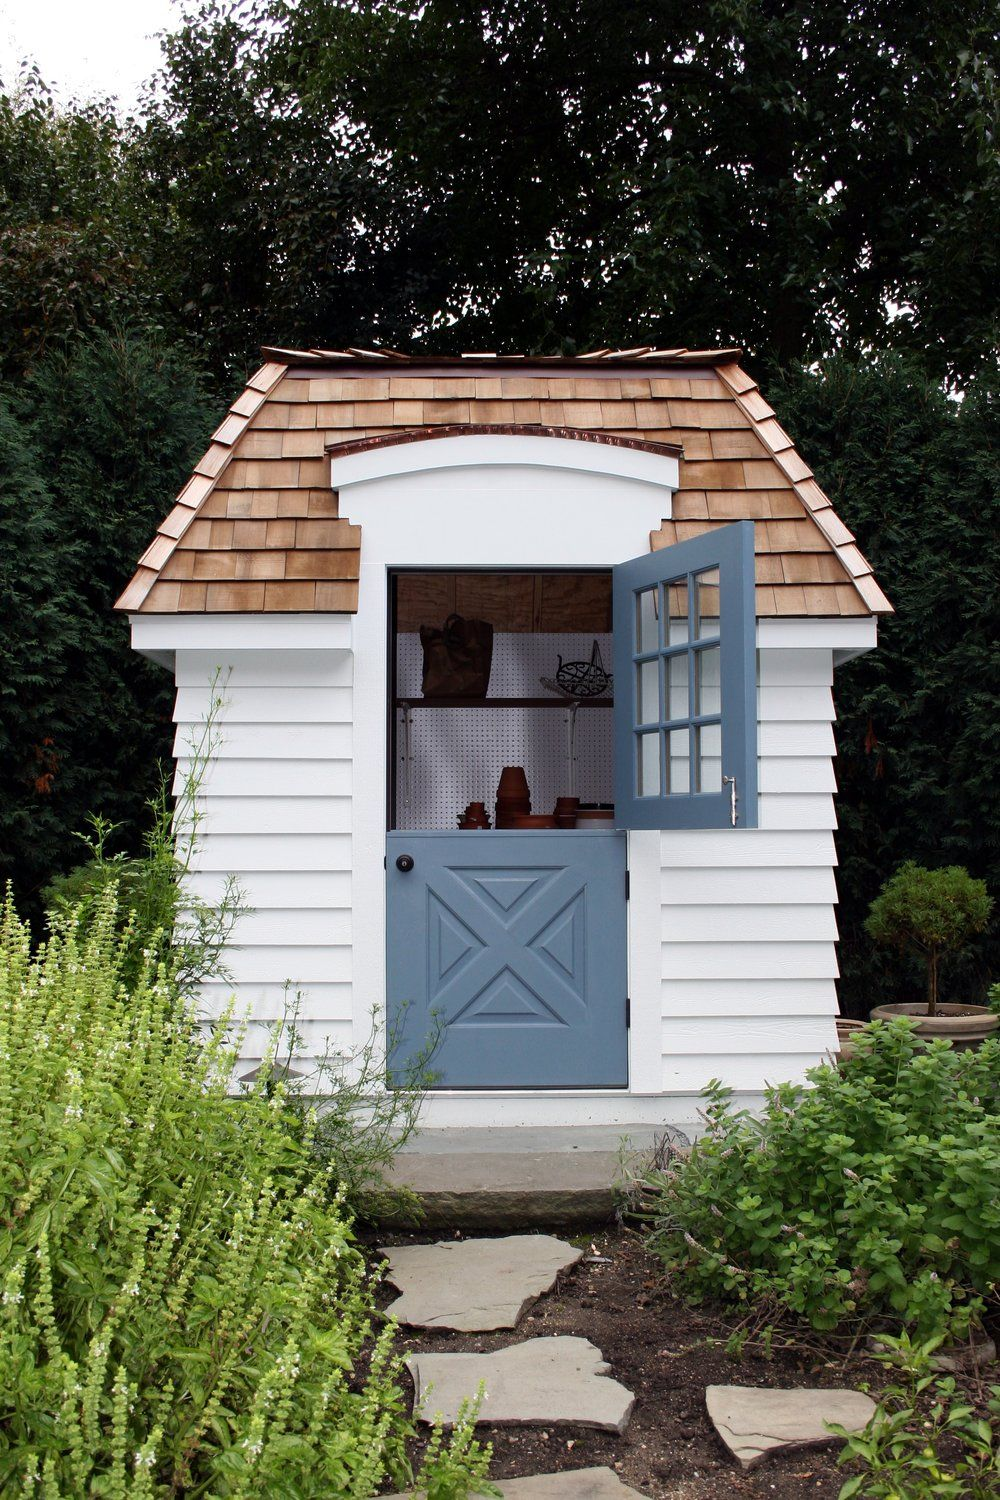 She shed blue dutch door